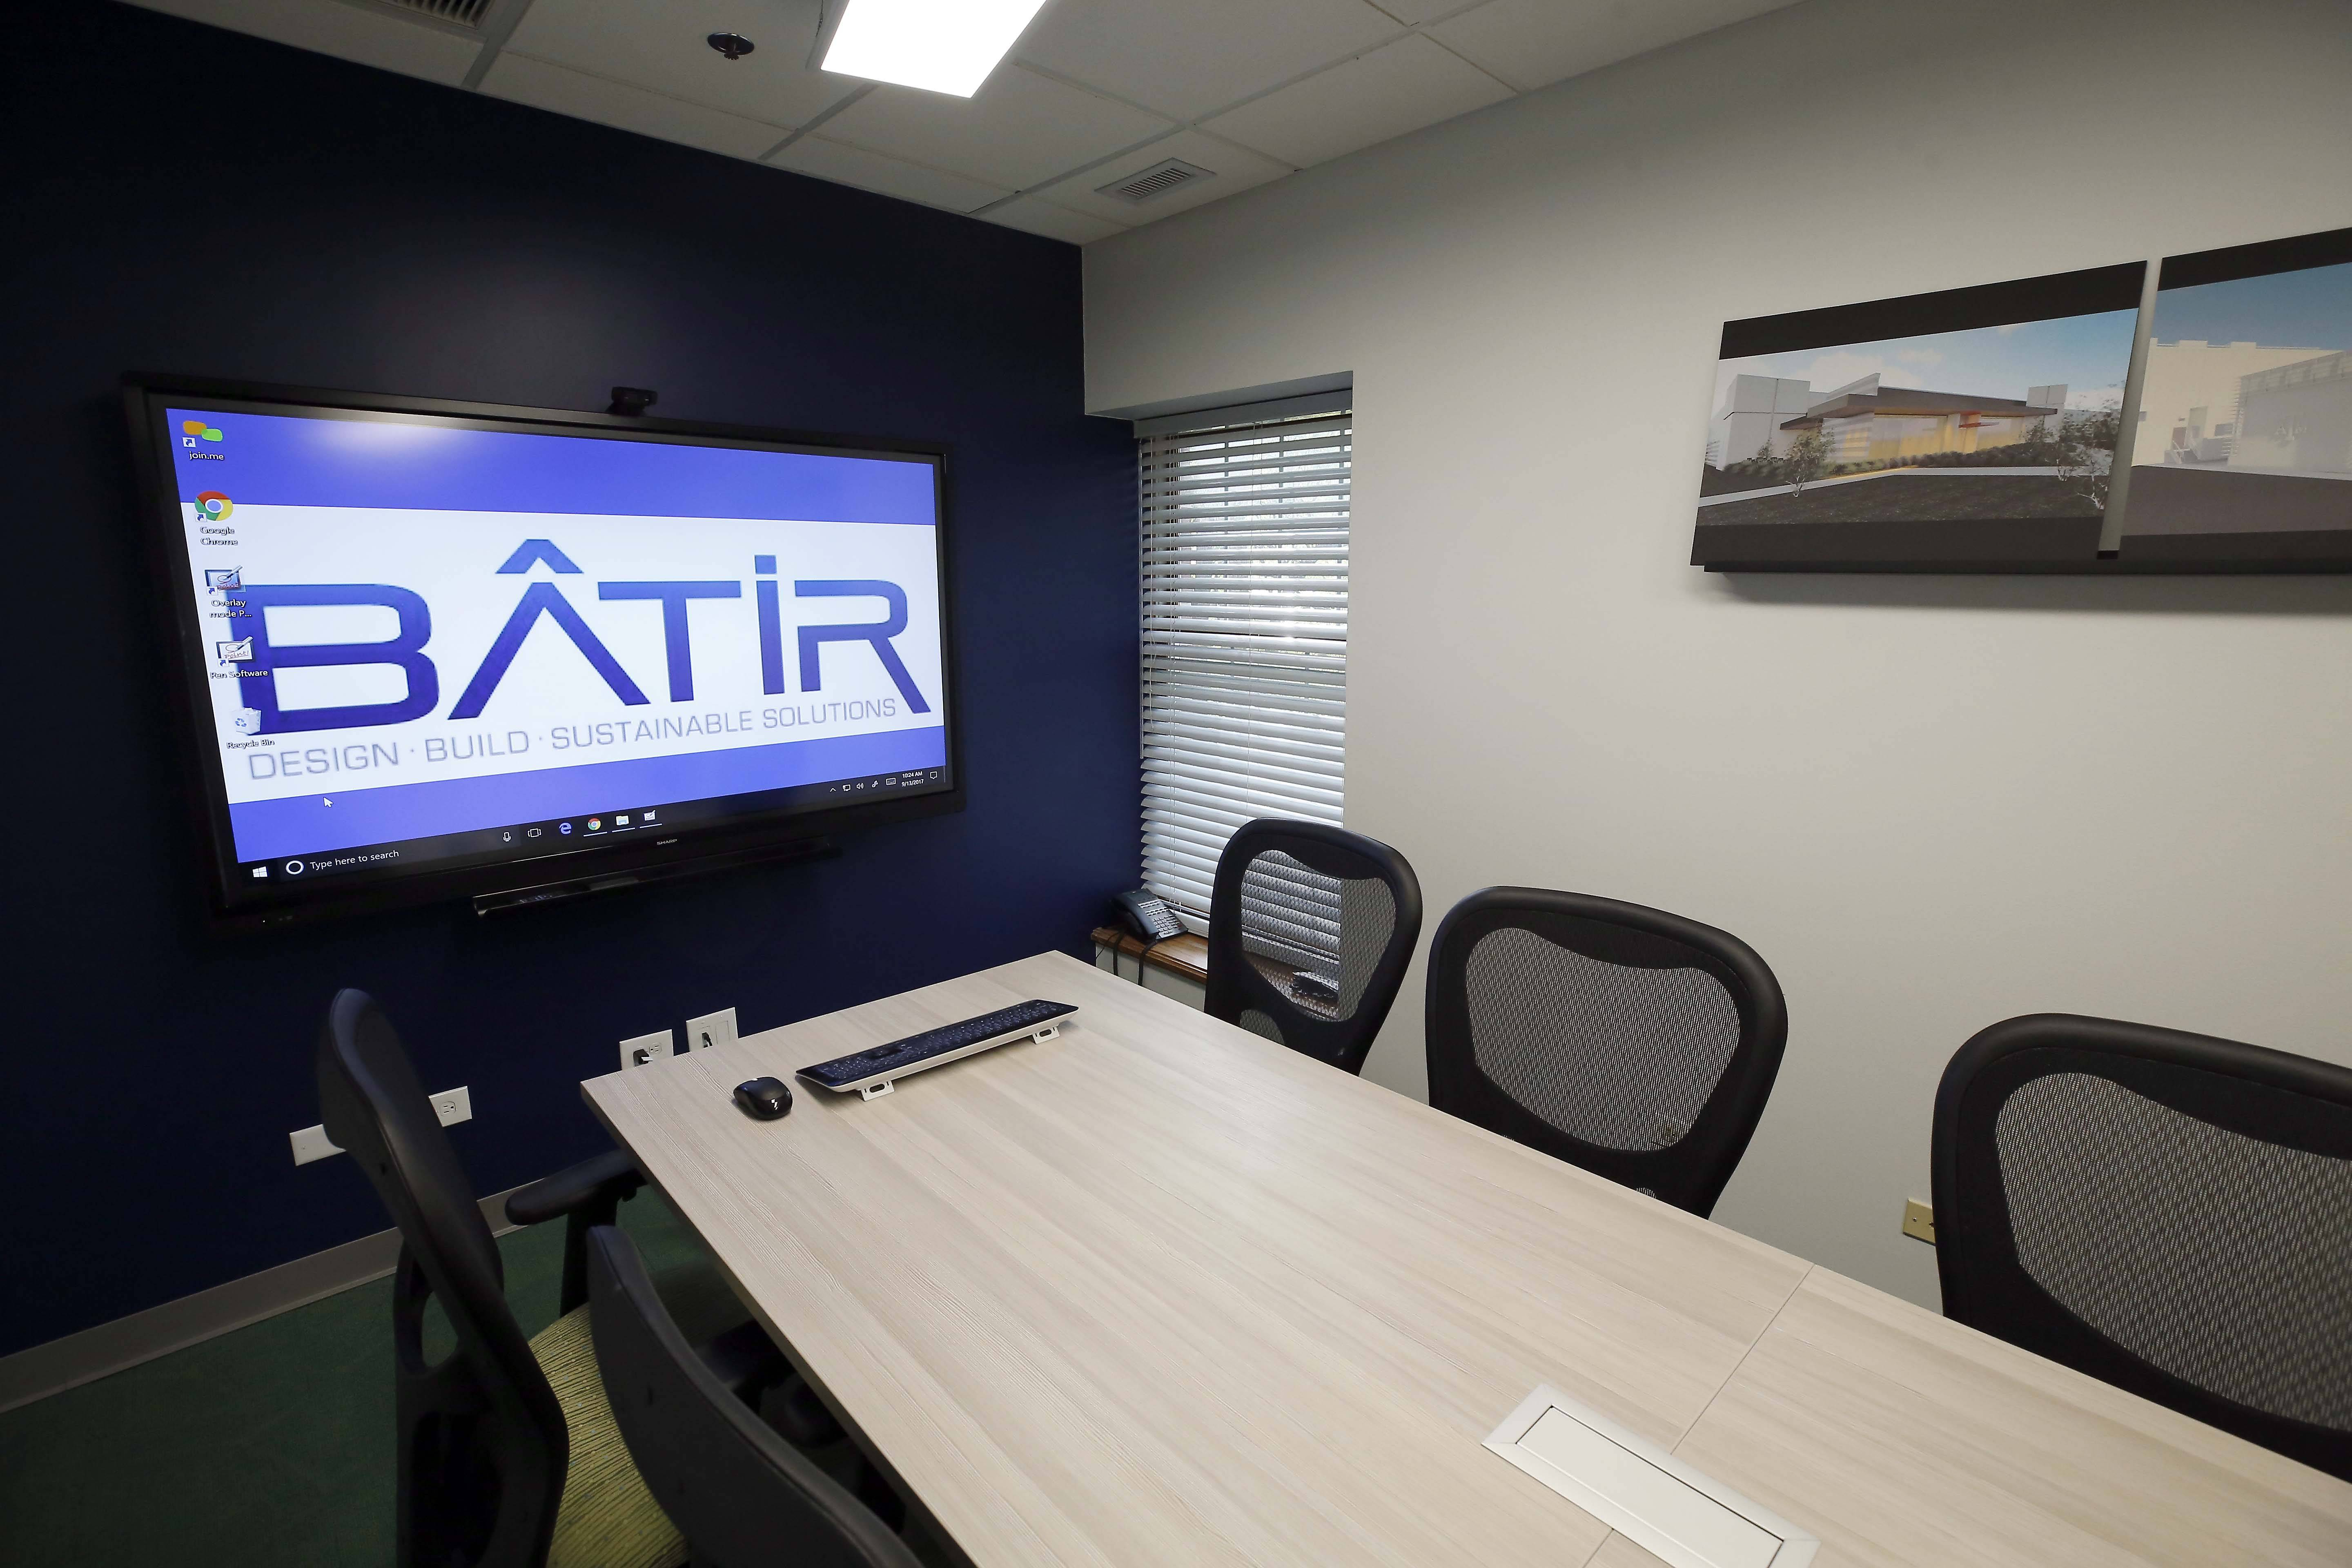 Batir Architecture won the Daily Herald Business Ledger workplace makeover contest and received a new conference room.